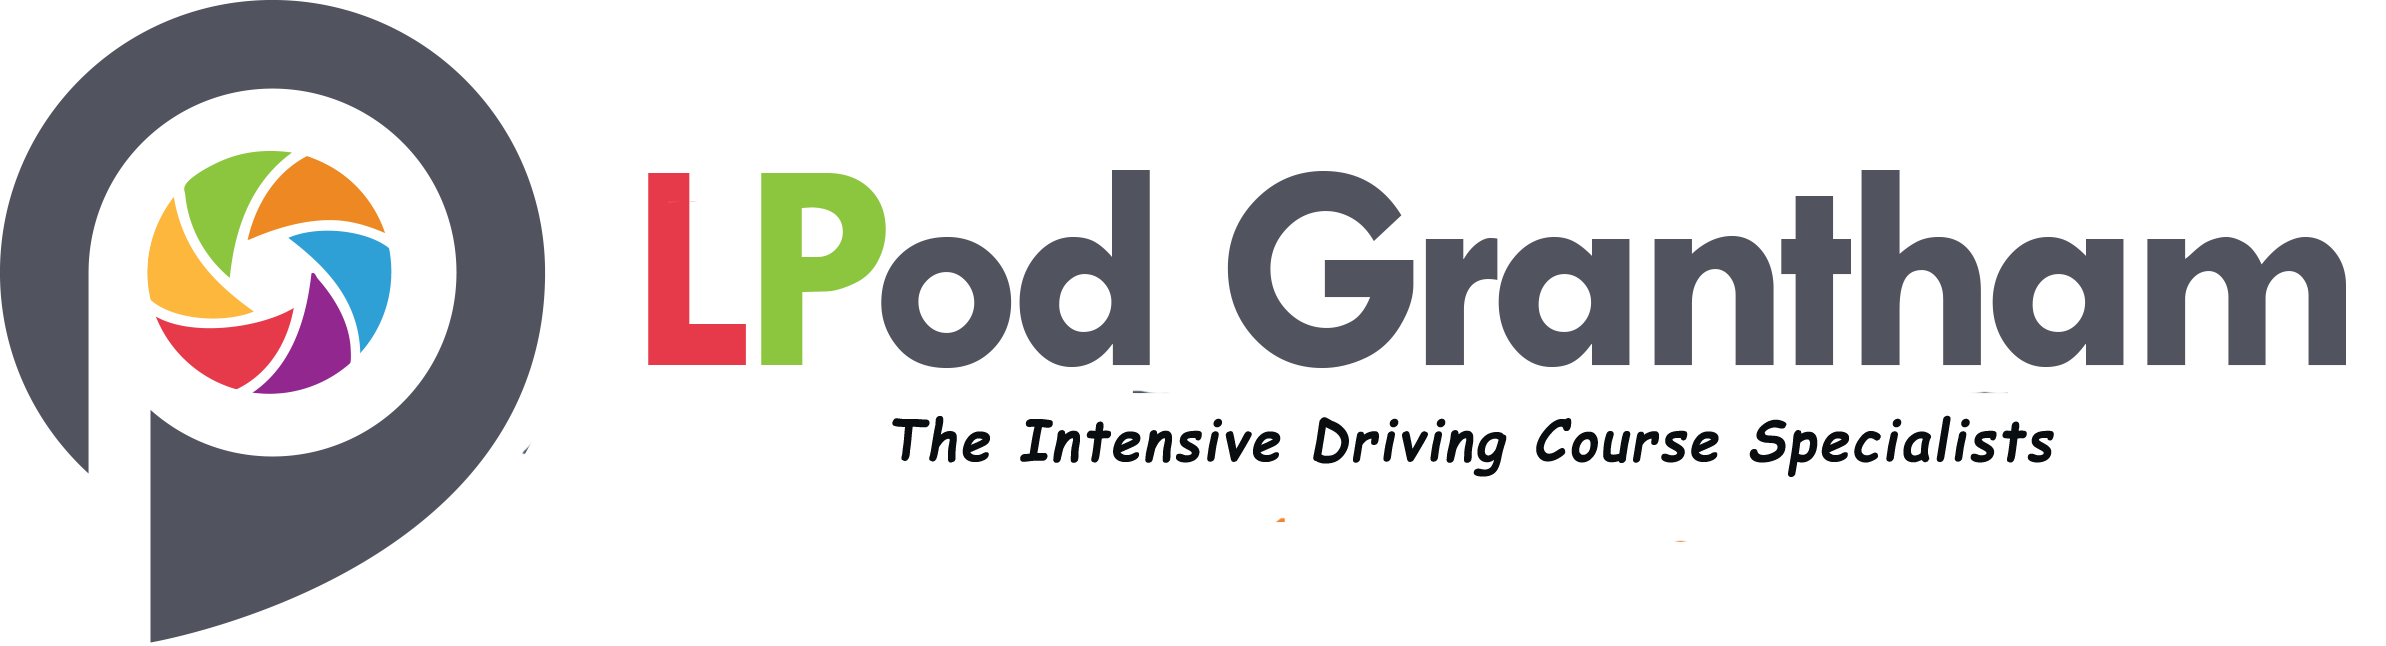 intensive driving courses grantham, intensive driving lessons grantham